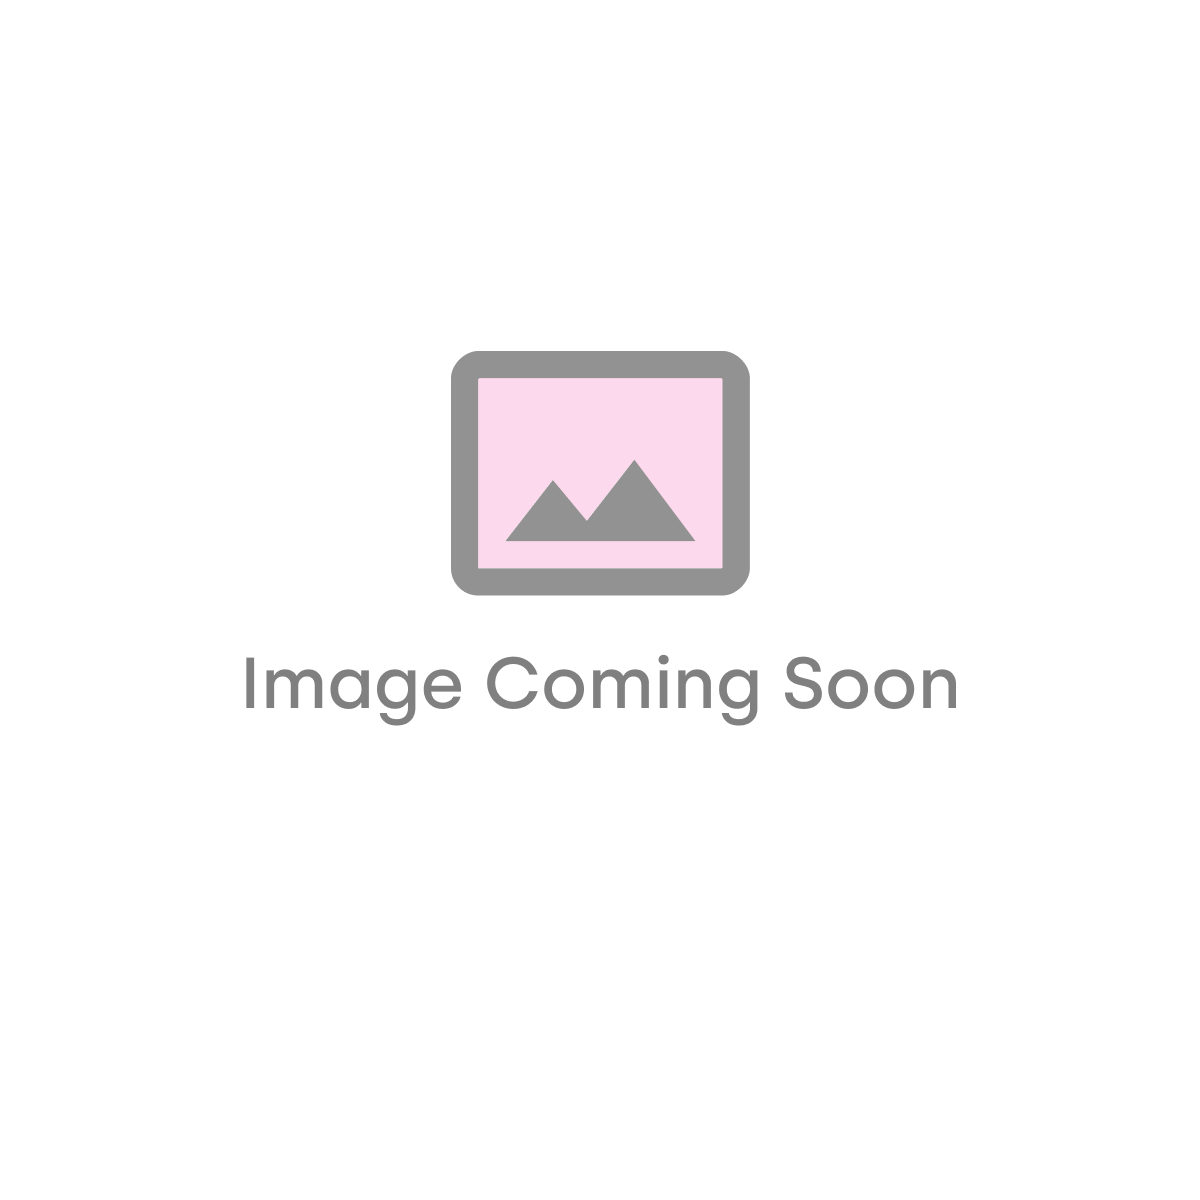 Bordeaux 700 x 500mm Framed LED Mirror (19391)